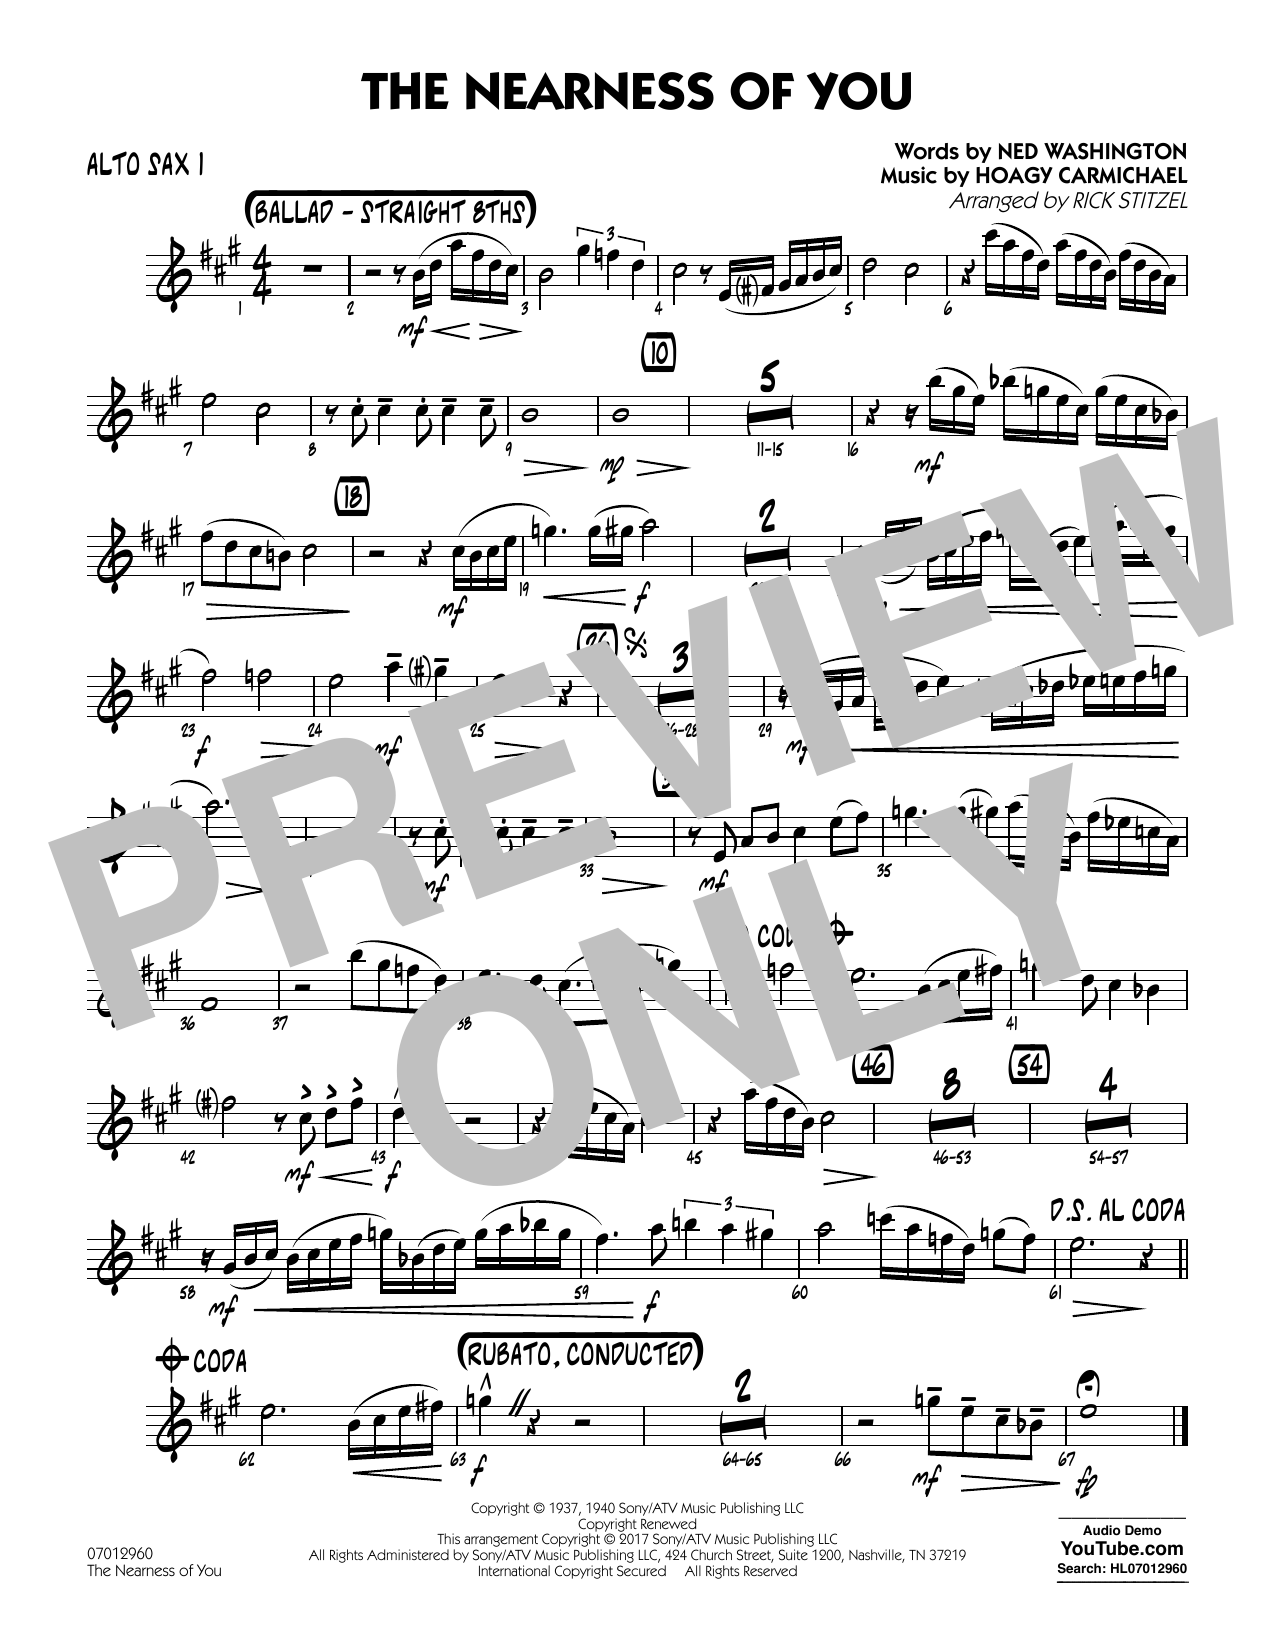 Rick Stitzel The Nearness of You (Key: C) - Alto Sax 1 sheet music notes and chords. Download Printable PDF.